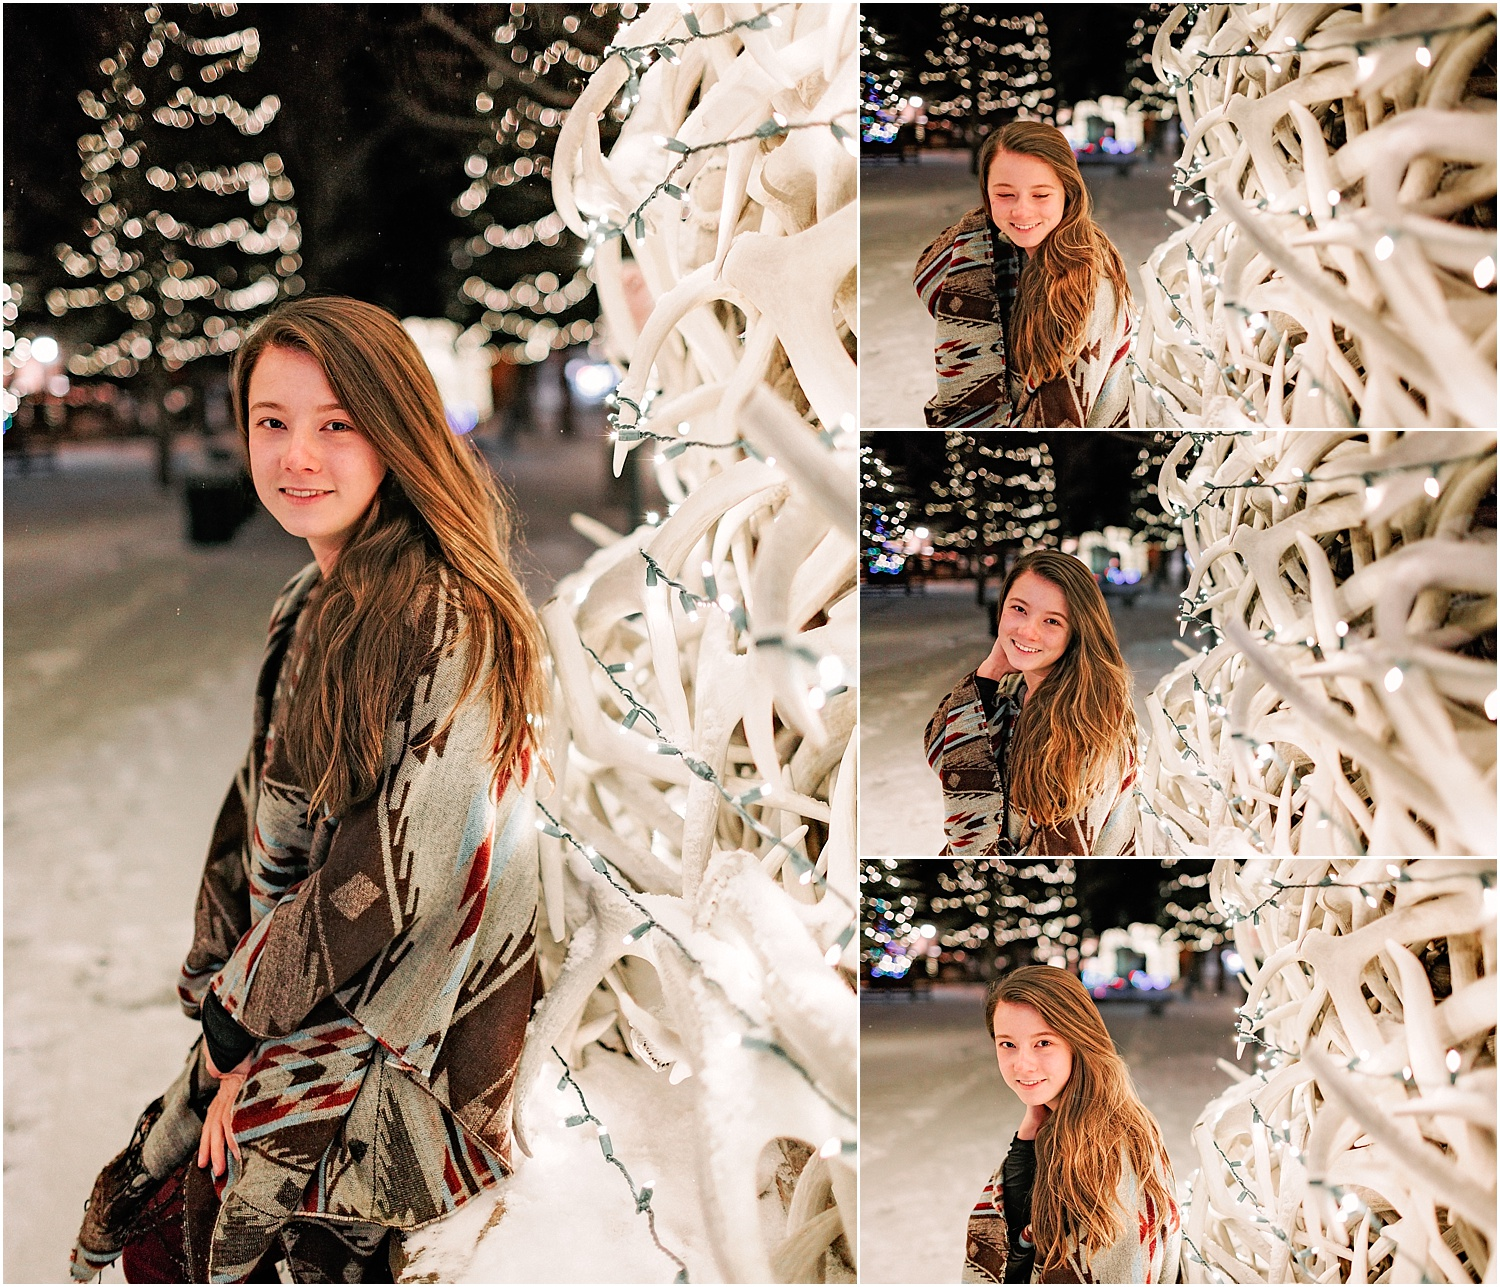 Jackson Hole Wyoming High School Senior Portrait Photographer